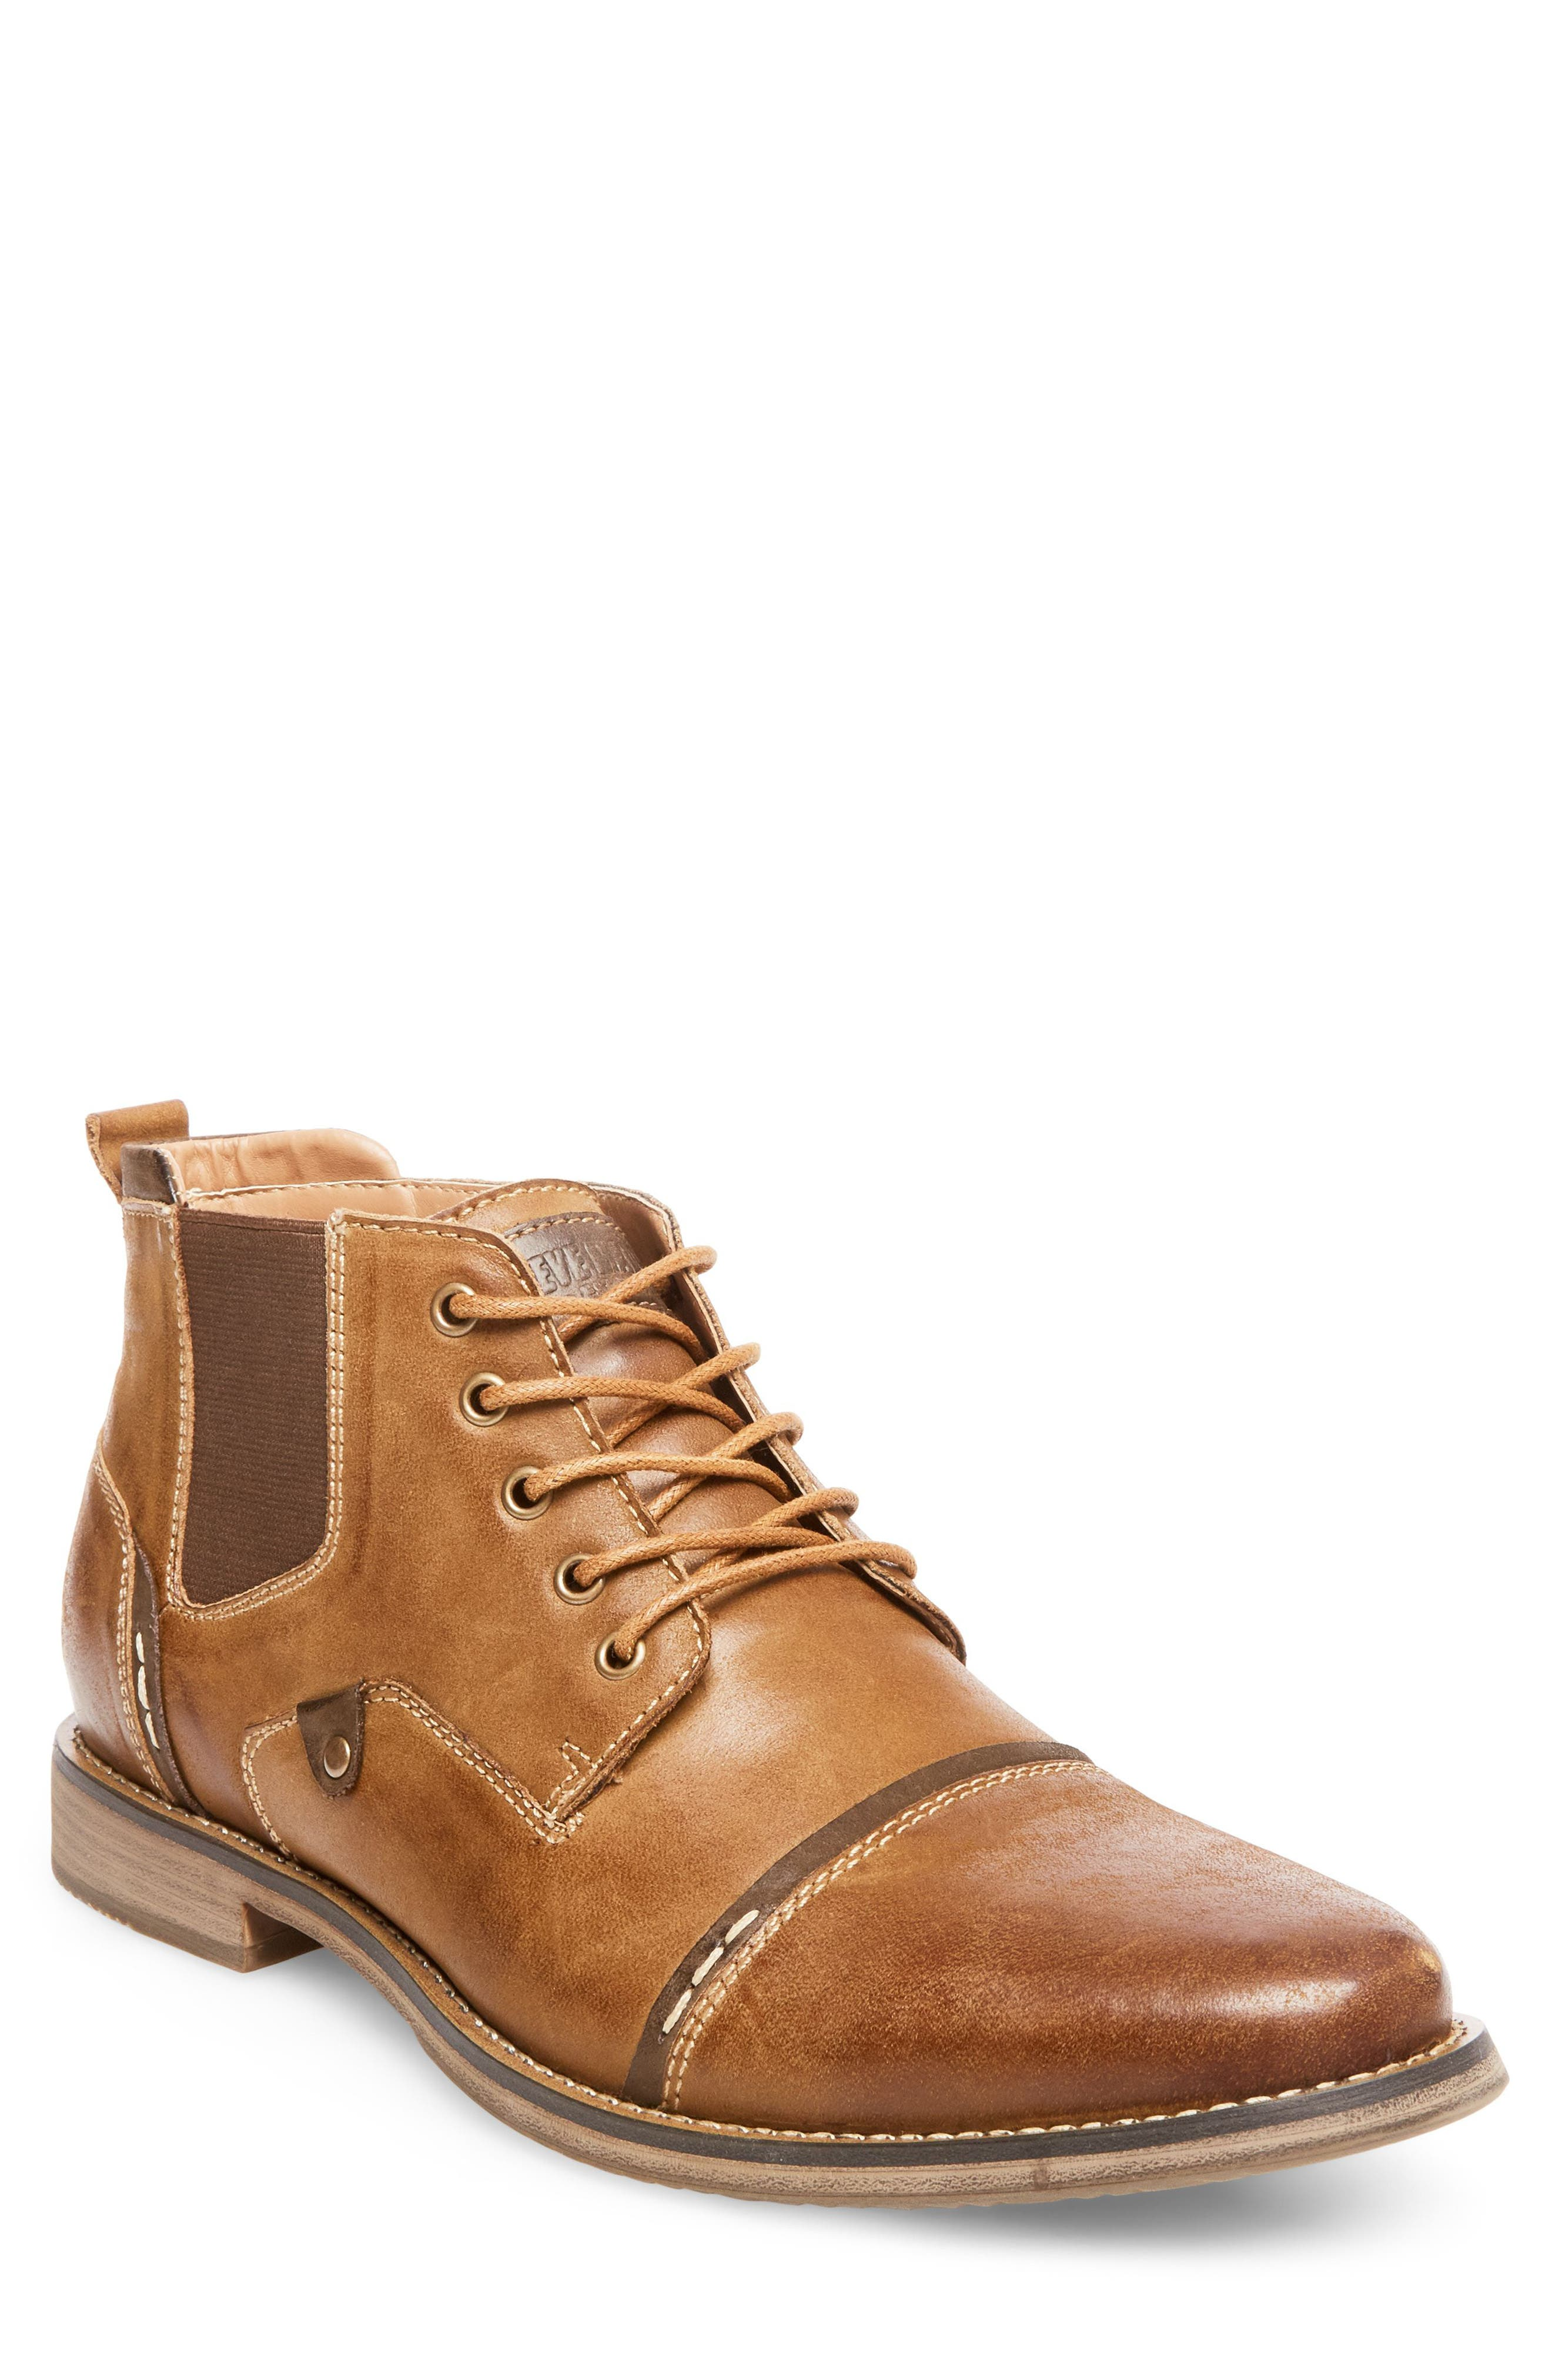 Alternate Image 1 Selected - Steve Madden Proxy Cap Toe Boot (Men)